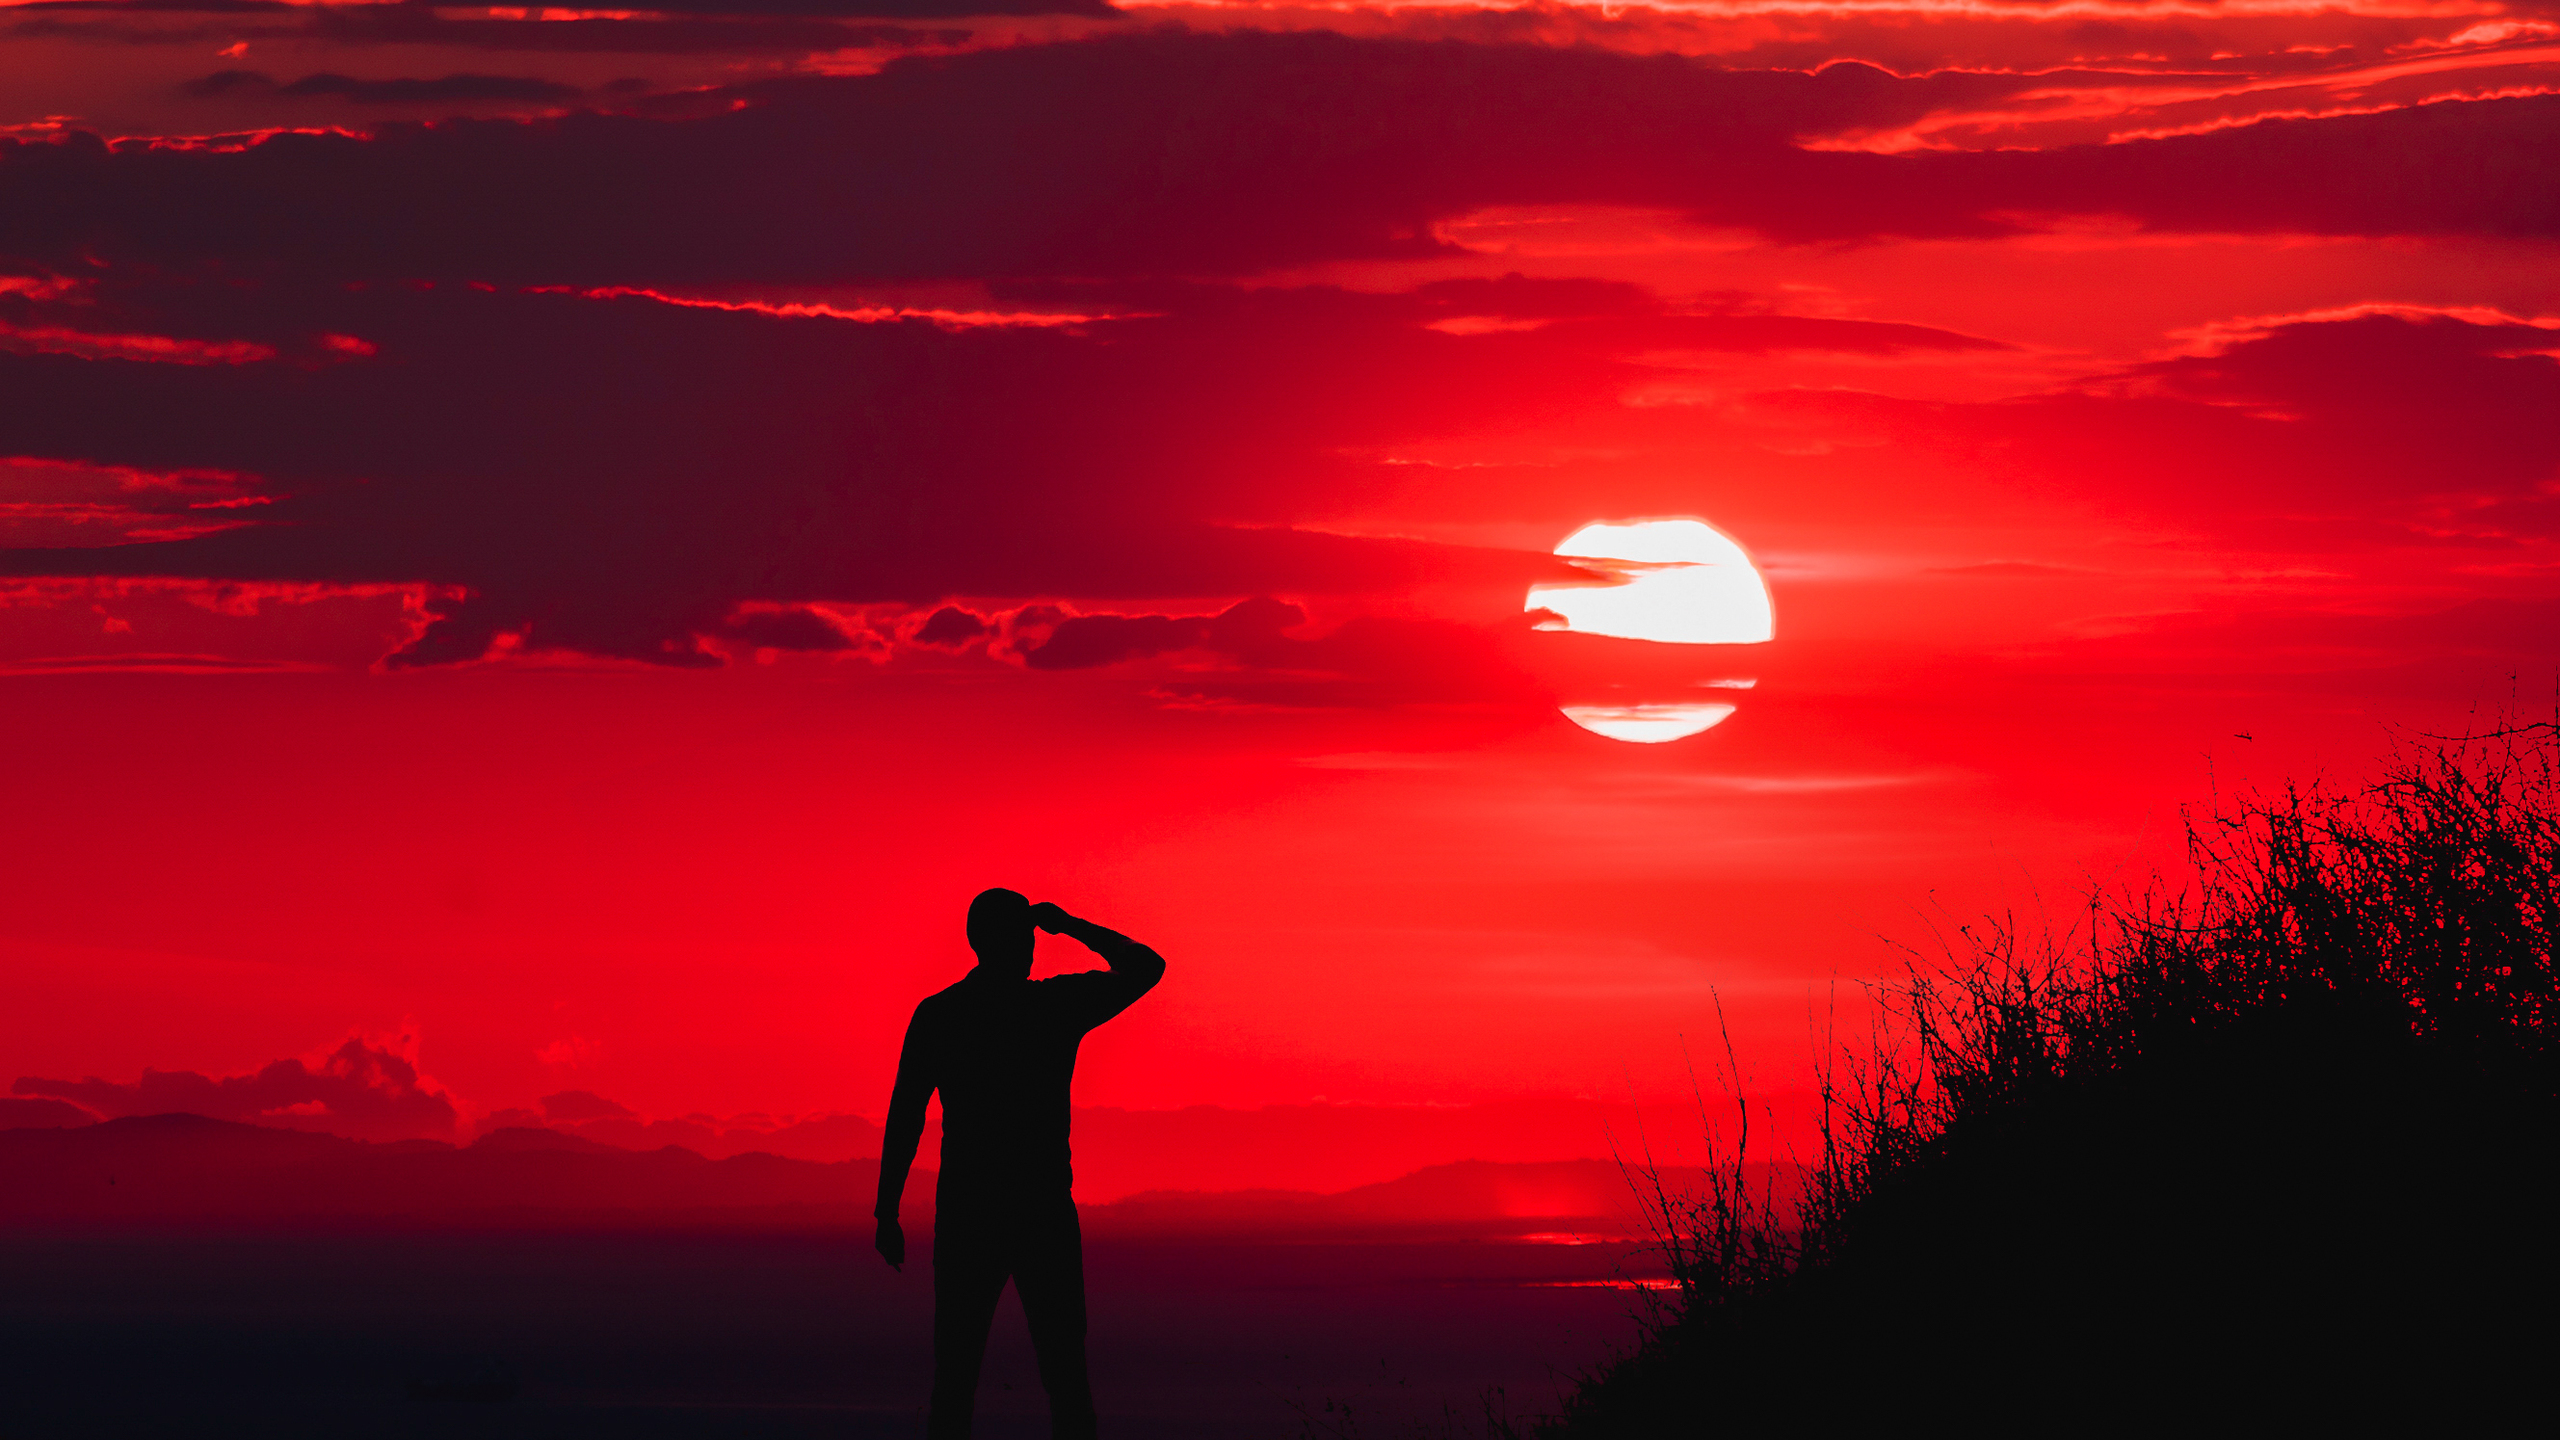 2560x1440 silhouette of man during red sun 1440p resolution hd 4k silhouette of man during red sun wbg altavistaventures Gallery